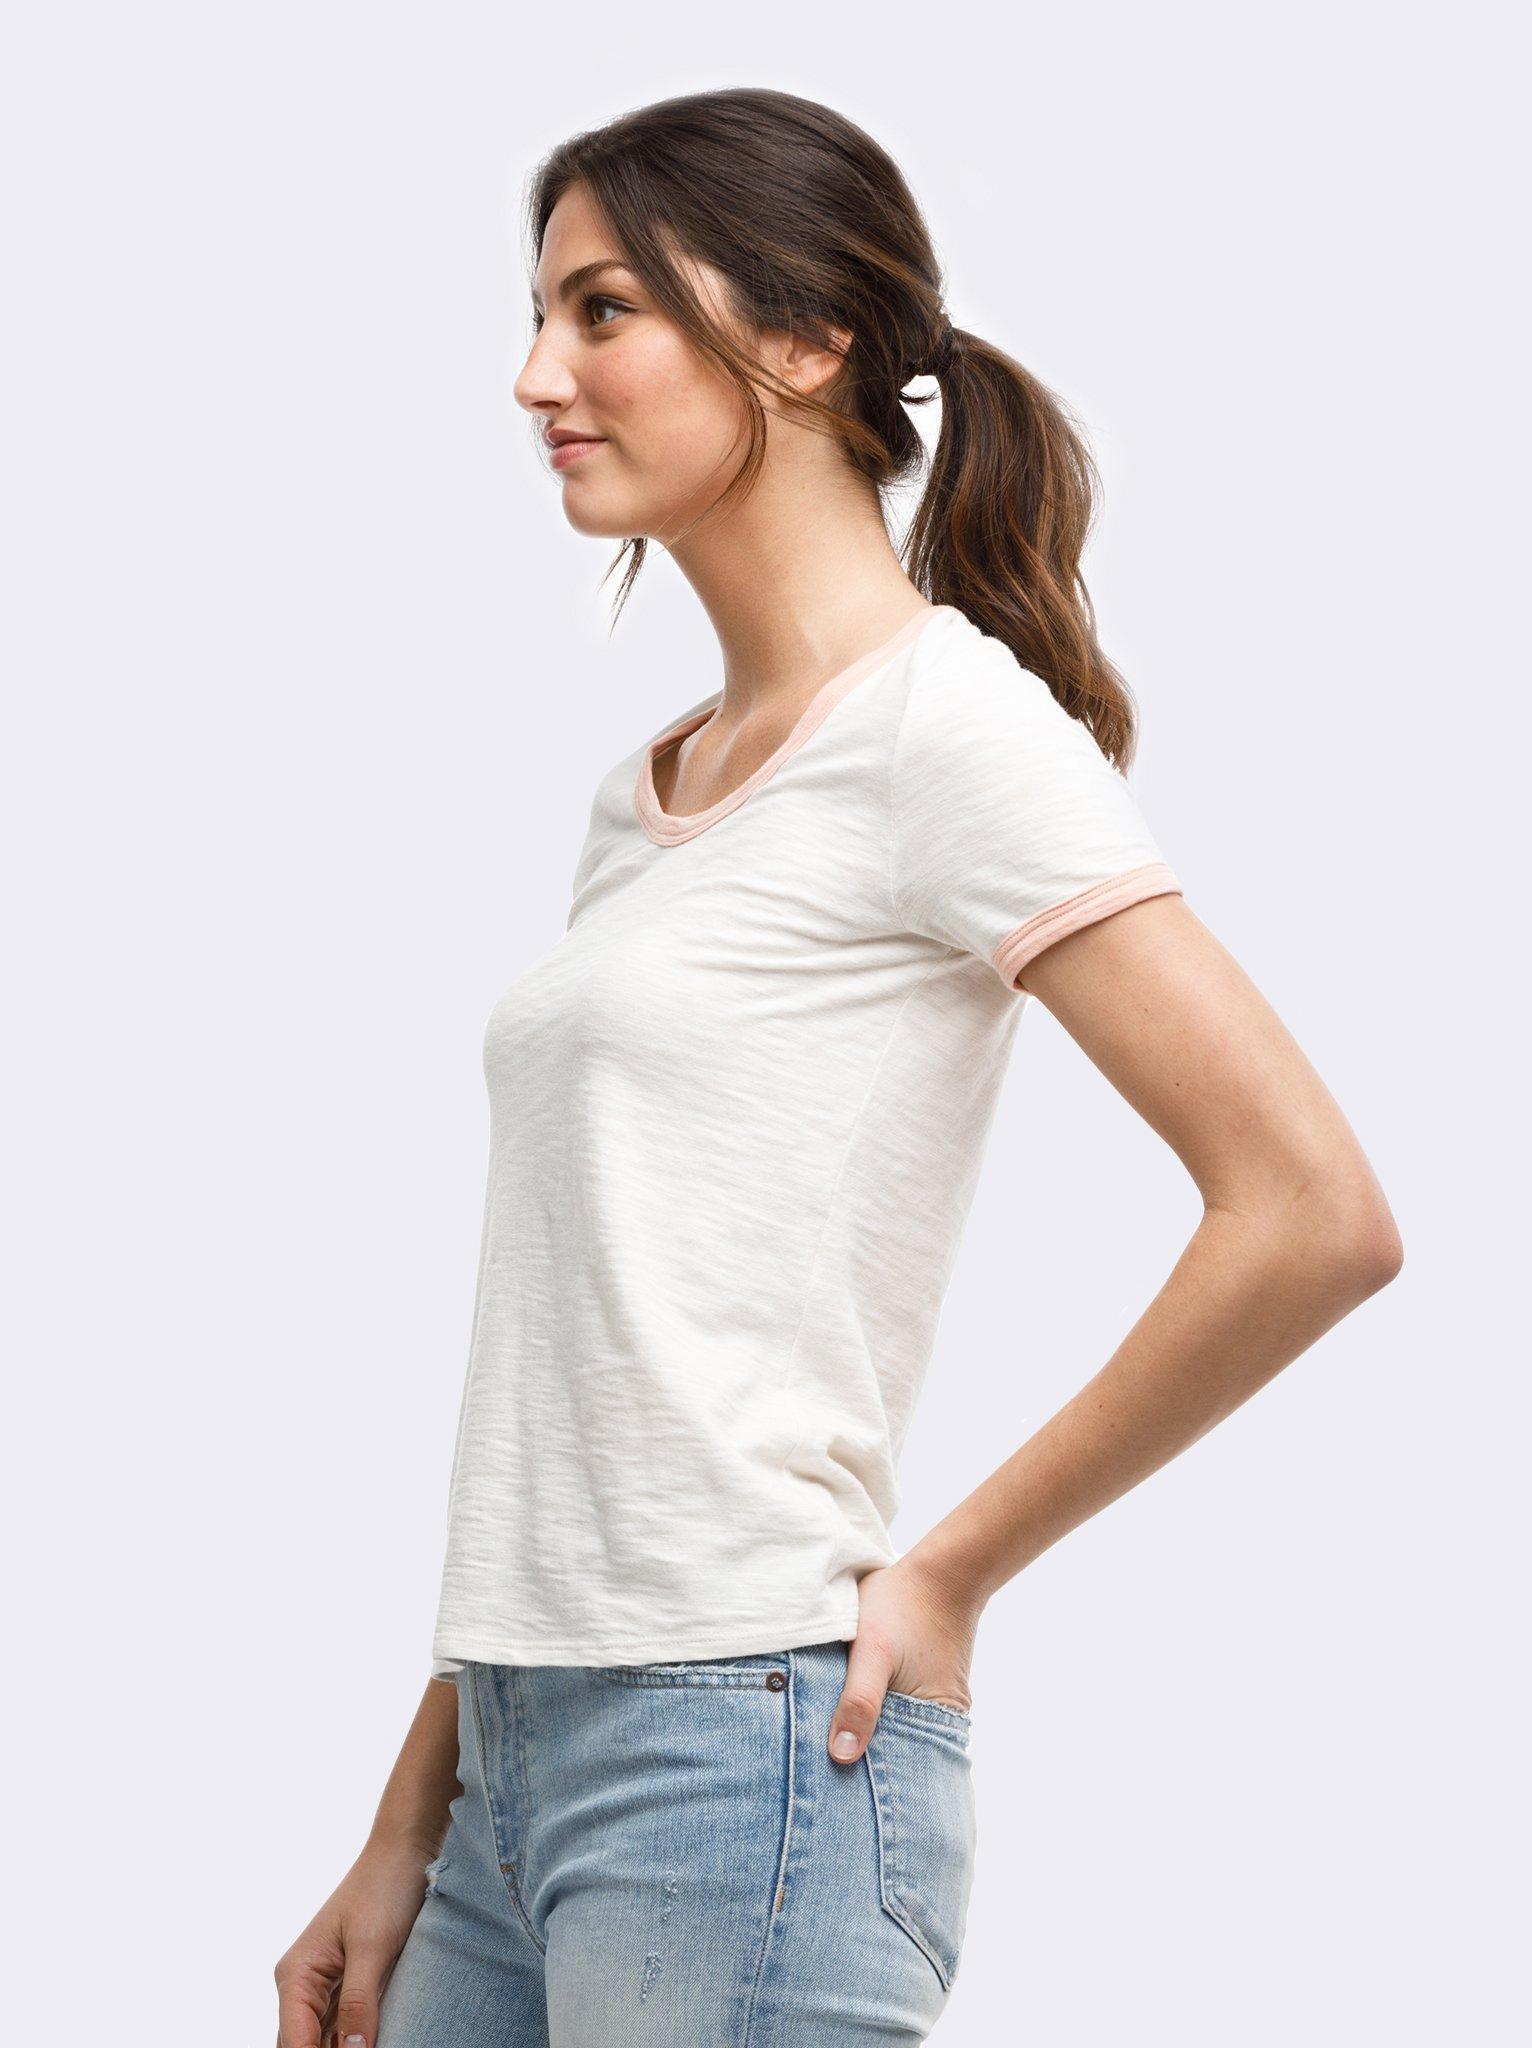 fashionable tees ethically made